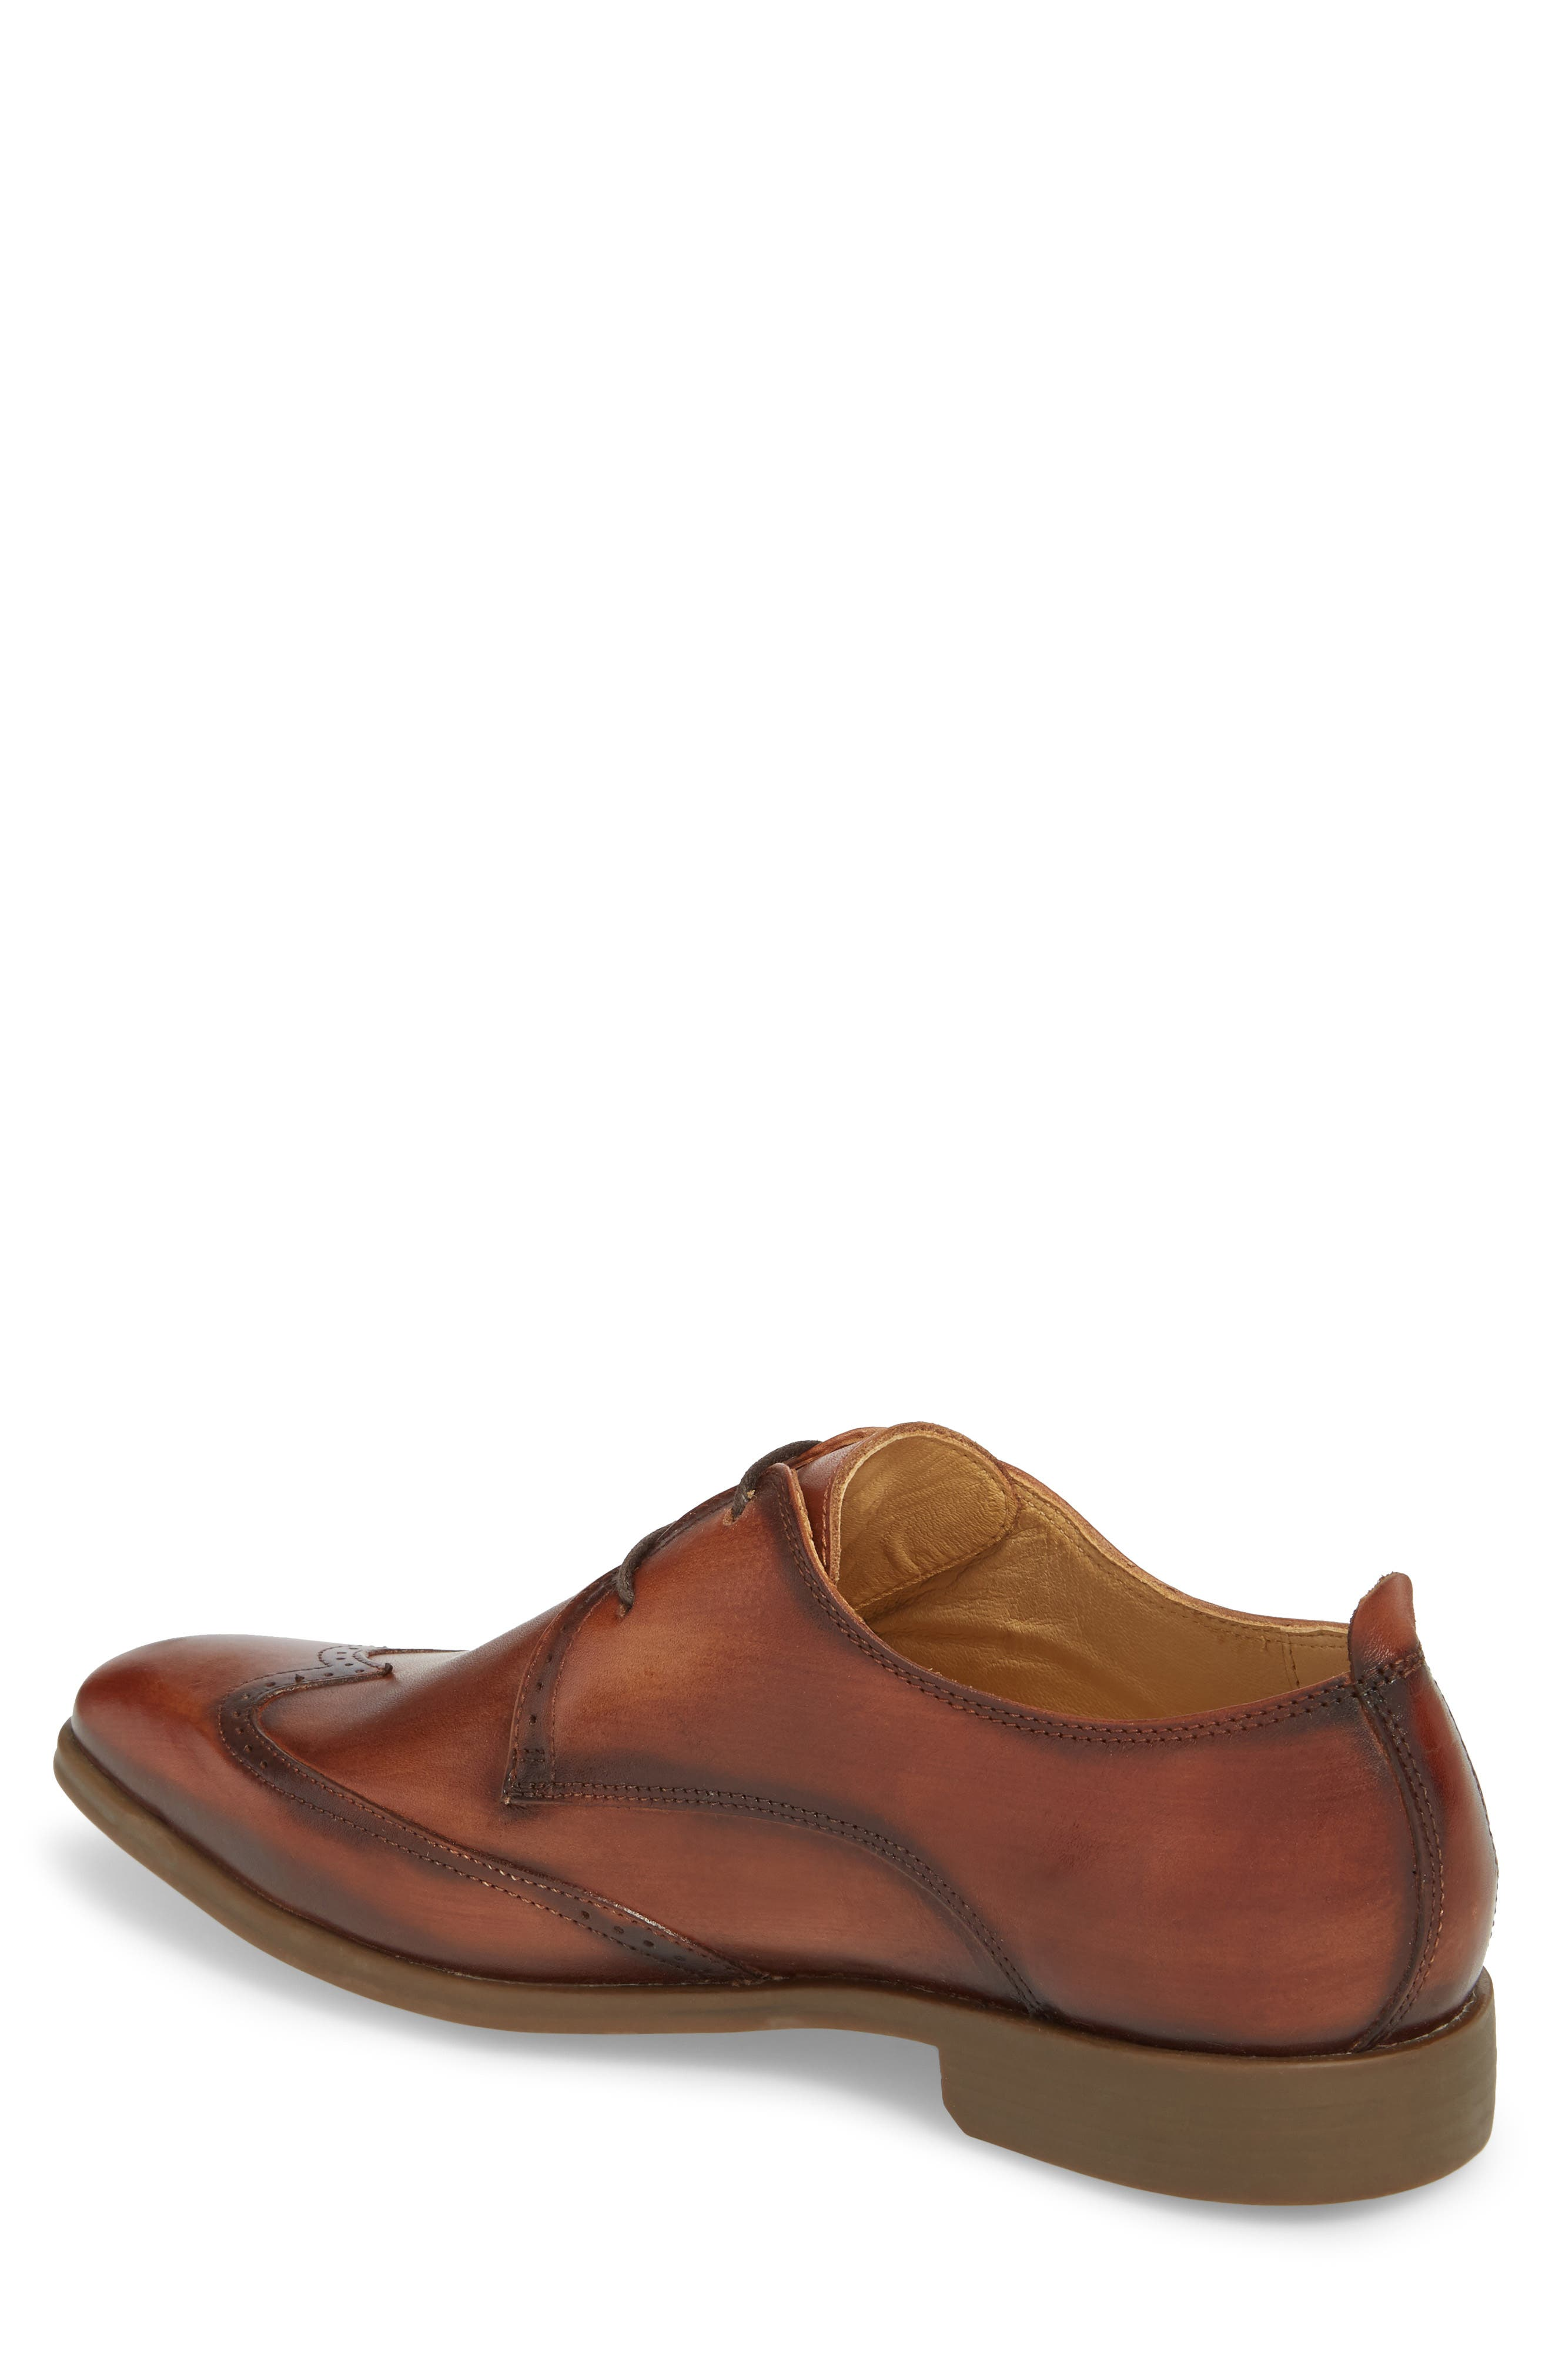 Ben Wingtip Derby,                             Alternate thumbnail 2, color,                             TOUCH BRONZE BRUSHED LEATHER